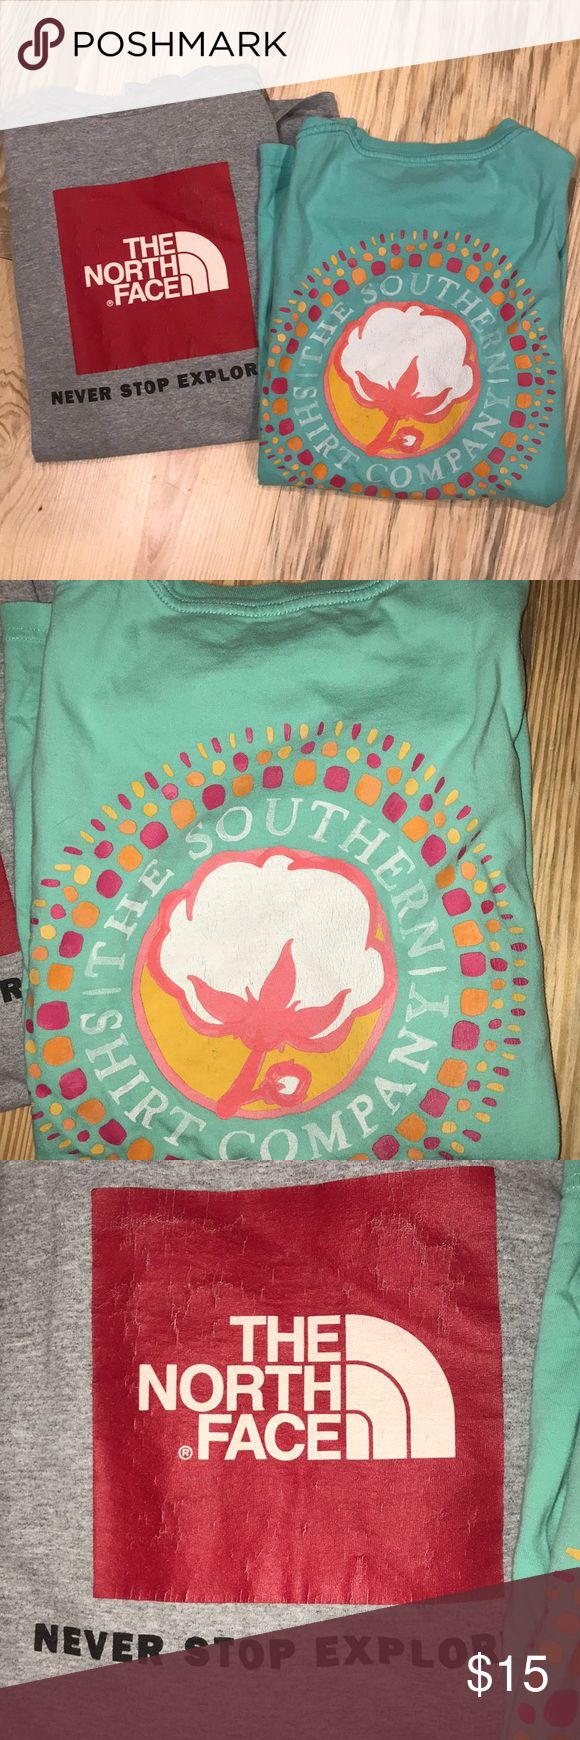 The North Face shirt & The Southern Tee Shirt Two shirts! Both have been worn but have lots of life left in them! I can sell them separately!   The North Face -long sleeve -size medium -gray and red -small stain on the front -symbol on the back is starting to crack  The Southern Shirt Company -size medium -teal shirt -symbol on the back is starting to crack  -short sleeve The North Face Tops Tees - Long Sleeve